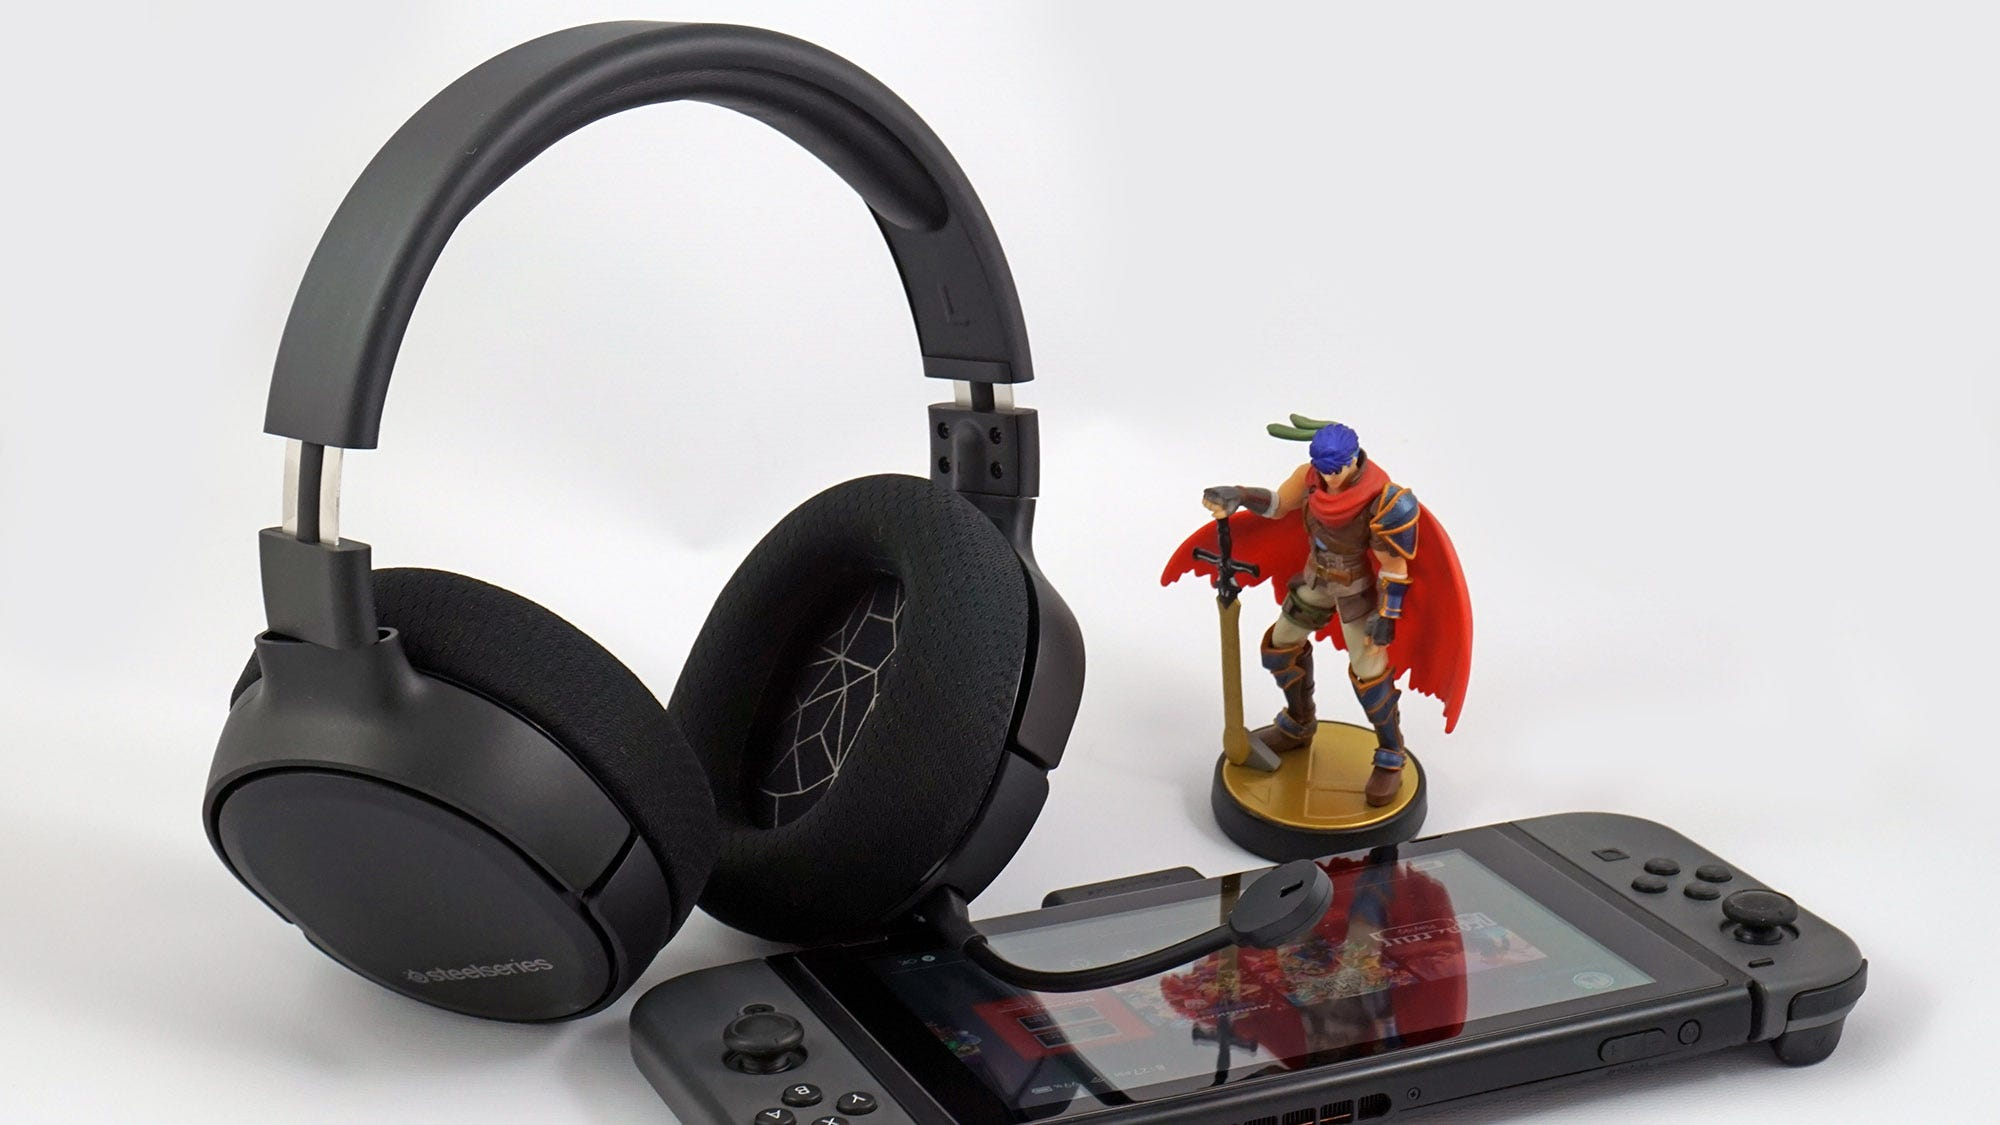 The Arctis 1 Wireless Headset sitting next to a Nintendo Switch.